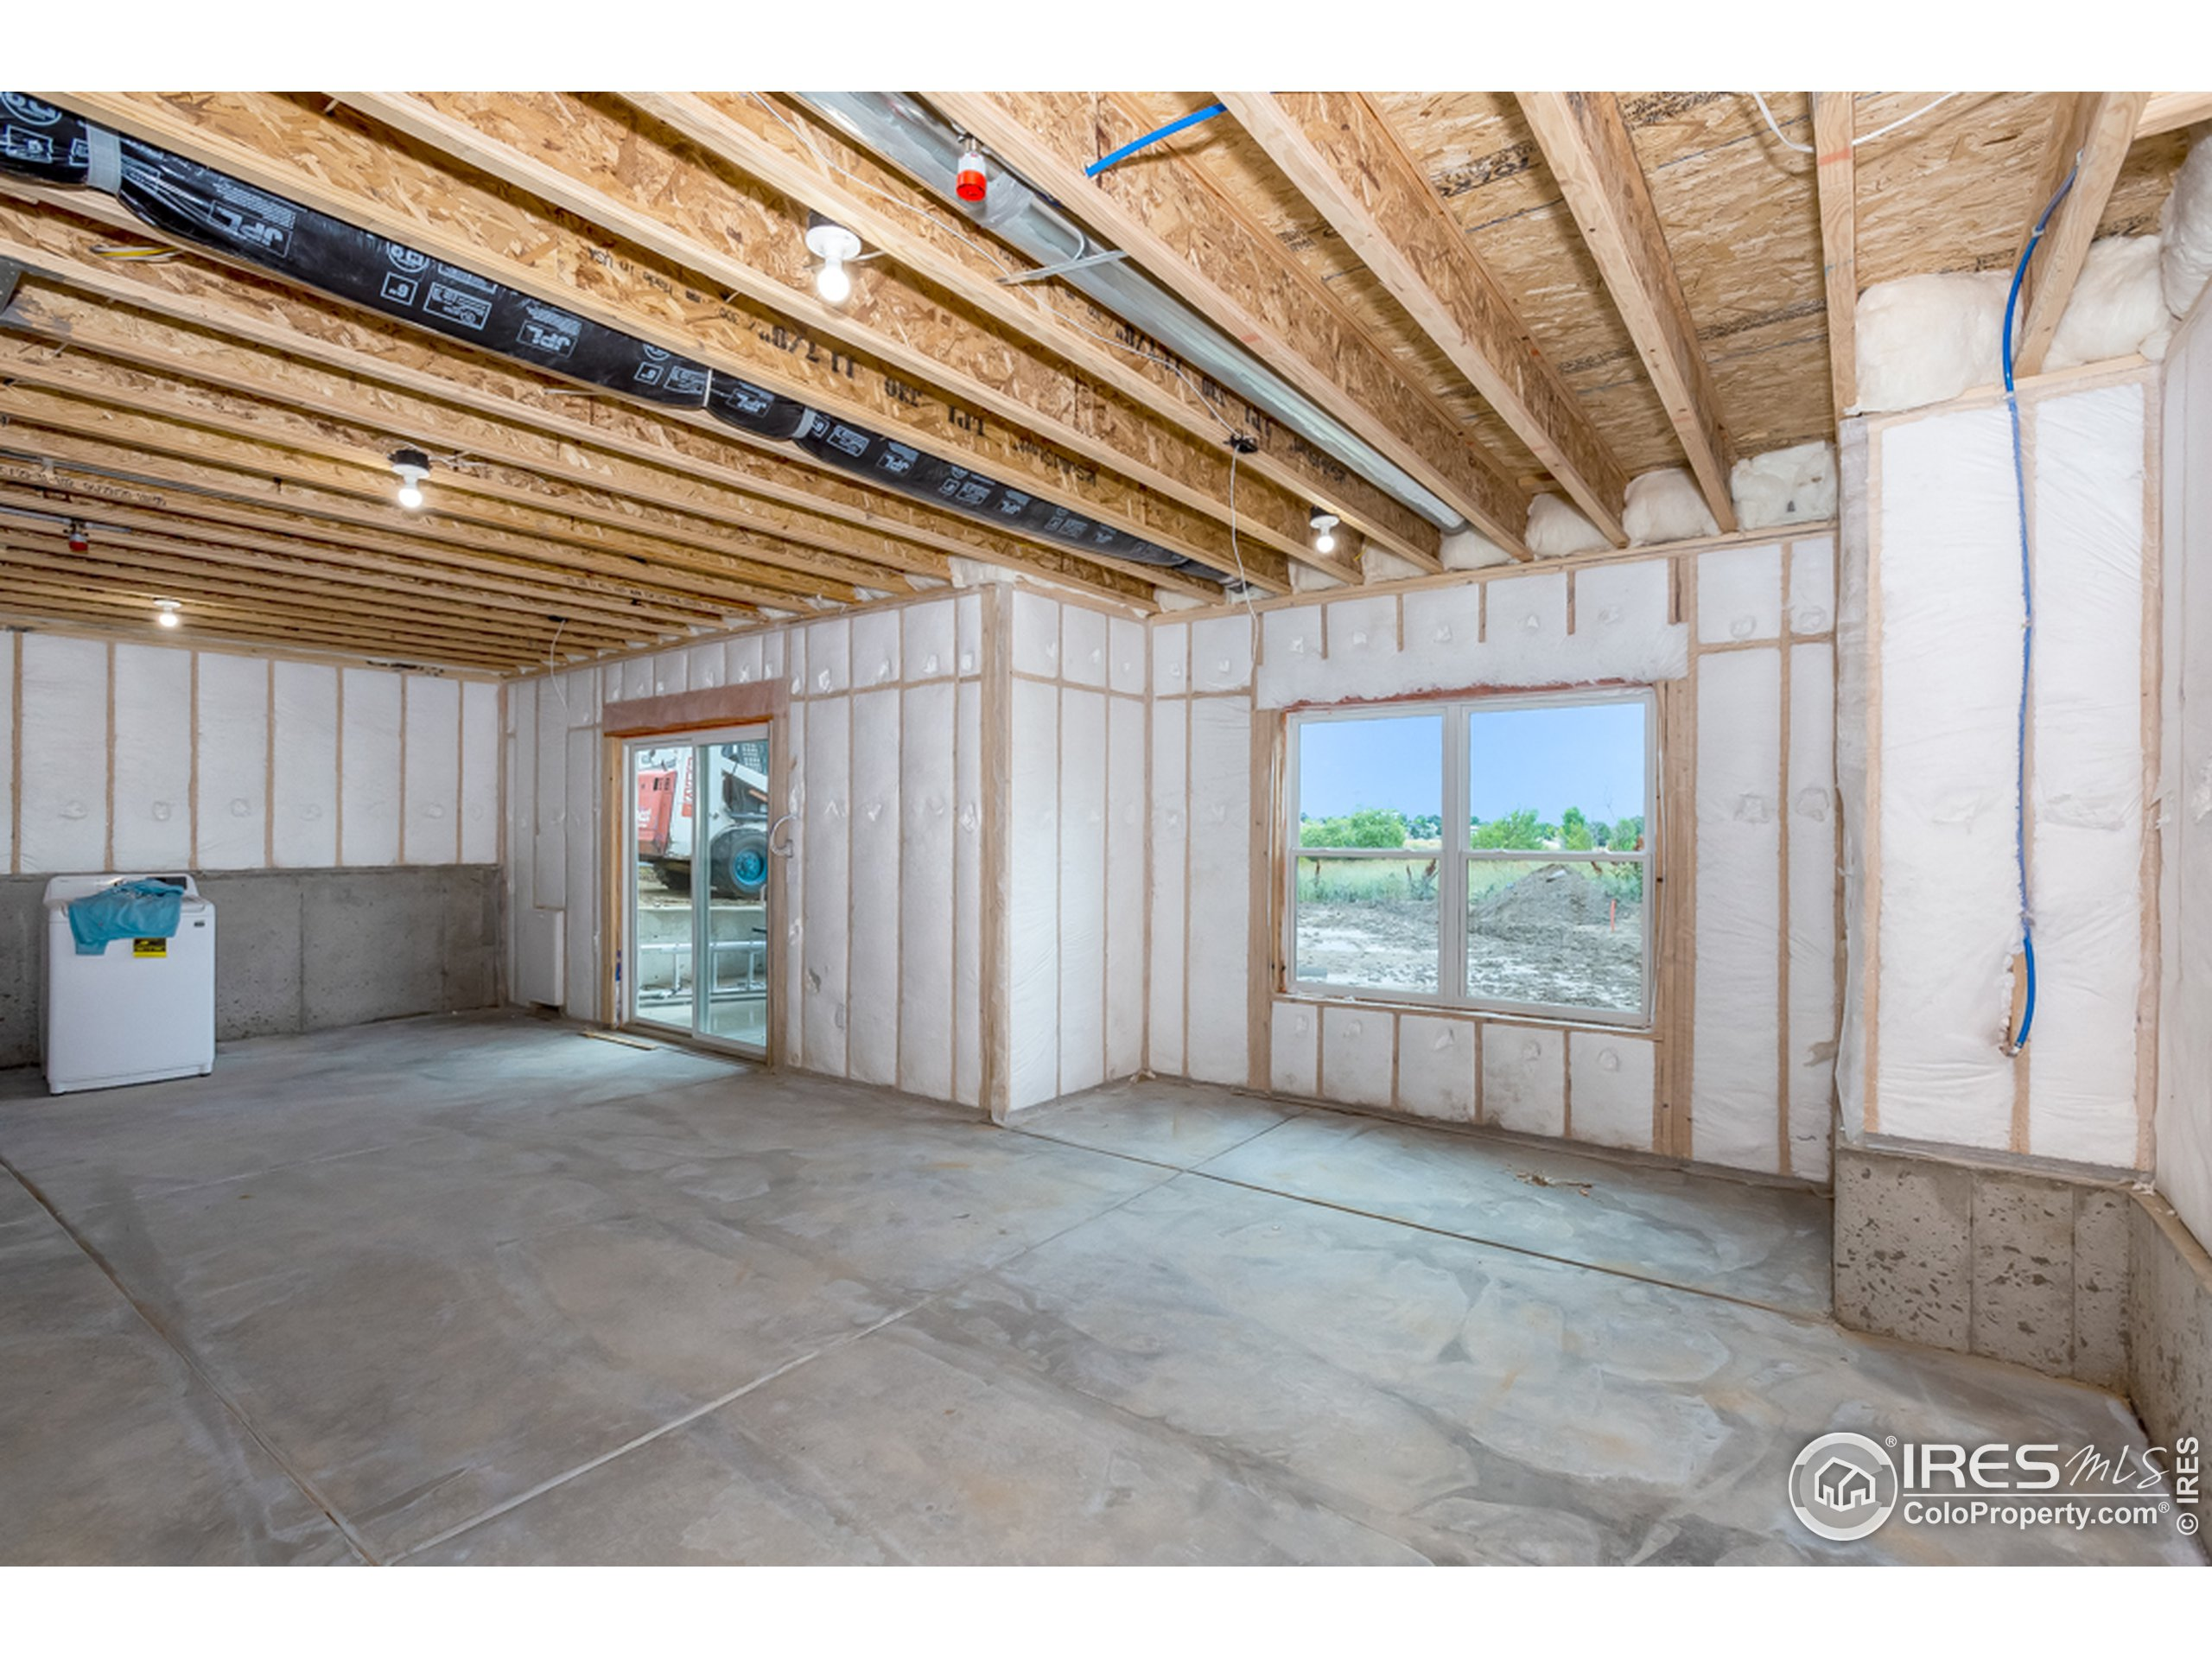 9' ceilings continue in the basement, along with a tankless H20 heater, insulated walls & slab w/ impervious barrier